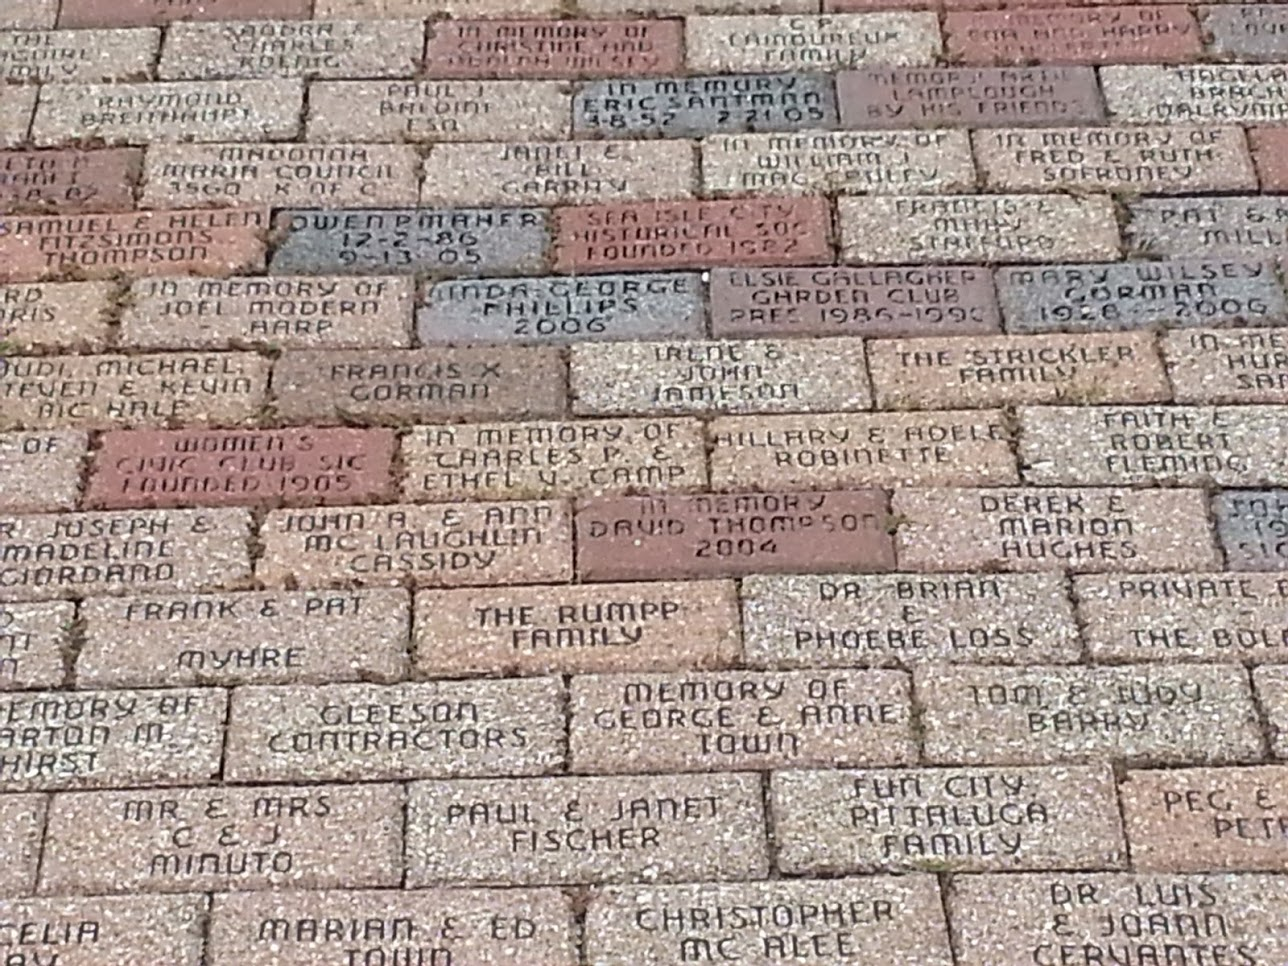 Purchase a memorial garden brick paver to support the museum Sea